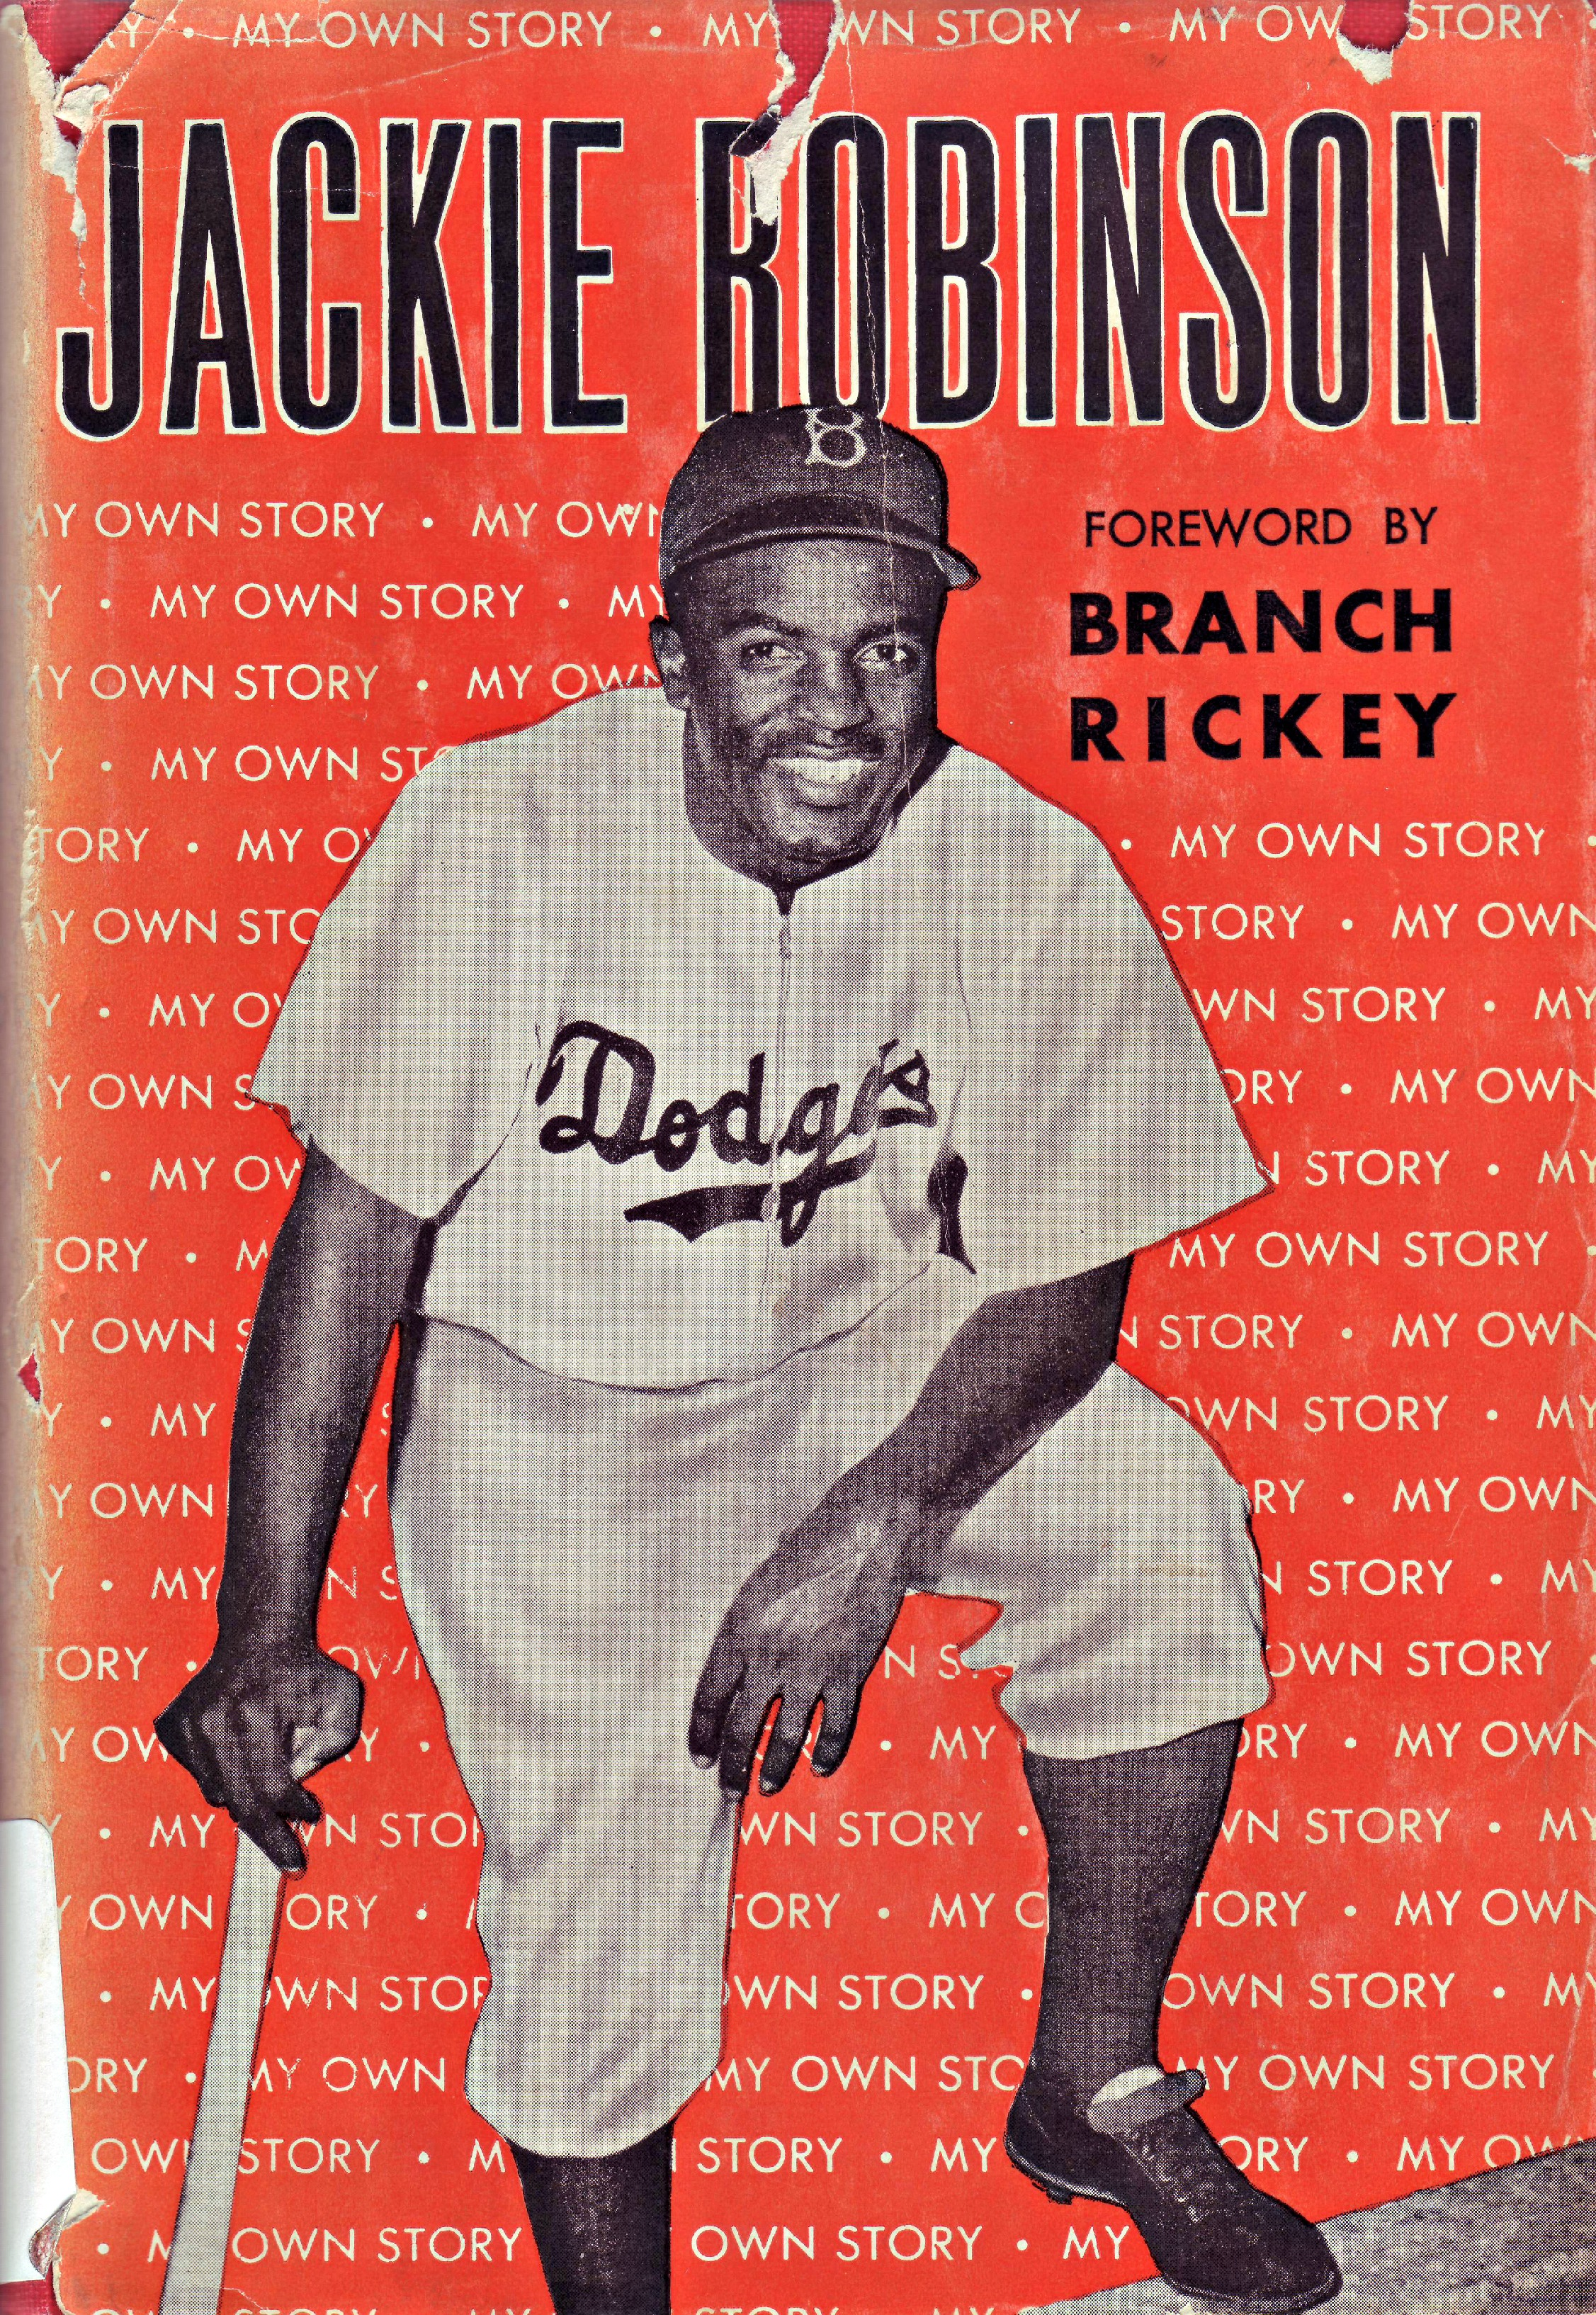 Jackie Robinson's first autobiography, <cite>My Own Story</cite> - BL-25-48 (National Baseball Hall of Fame Library)